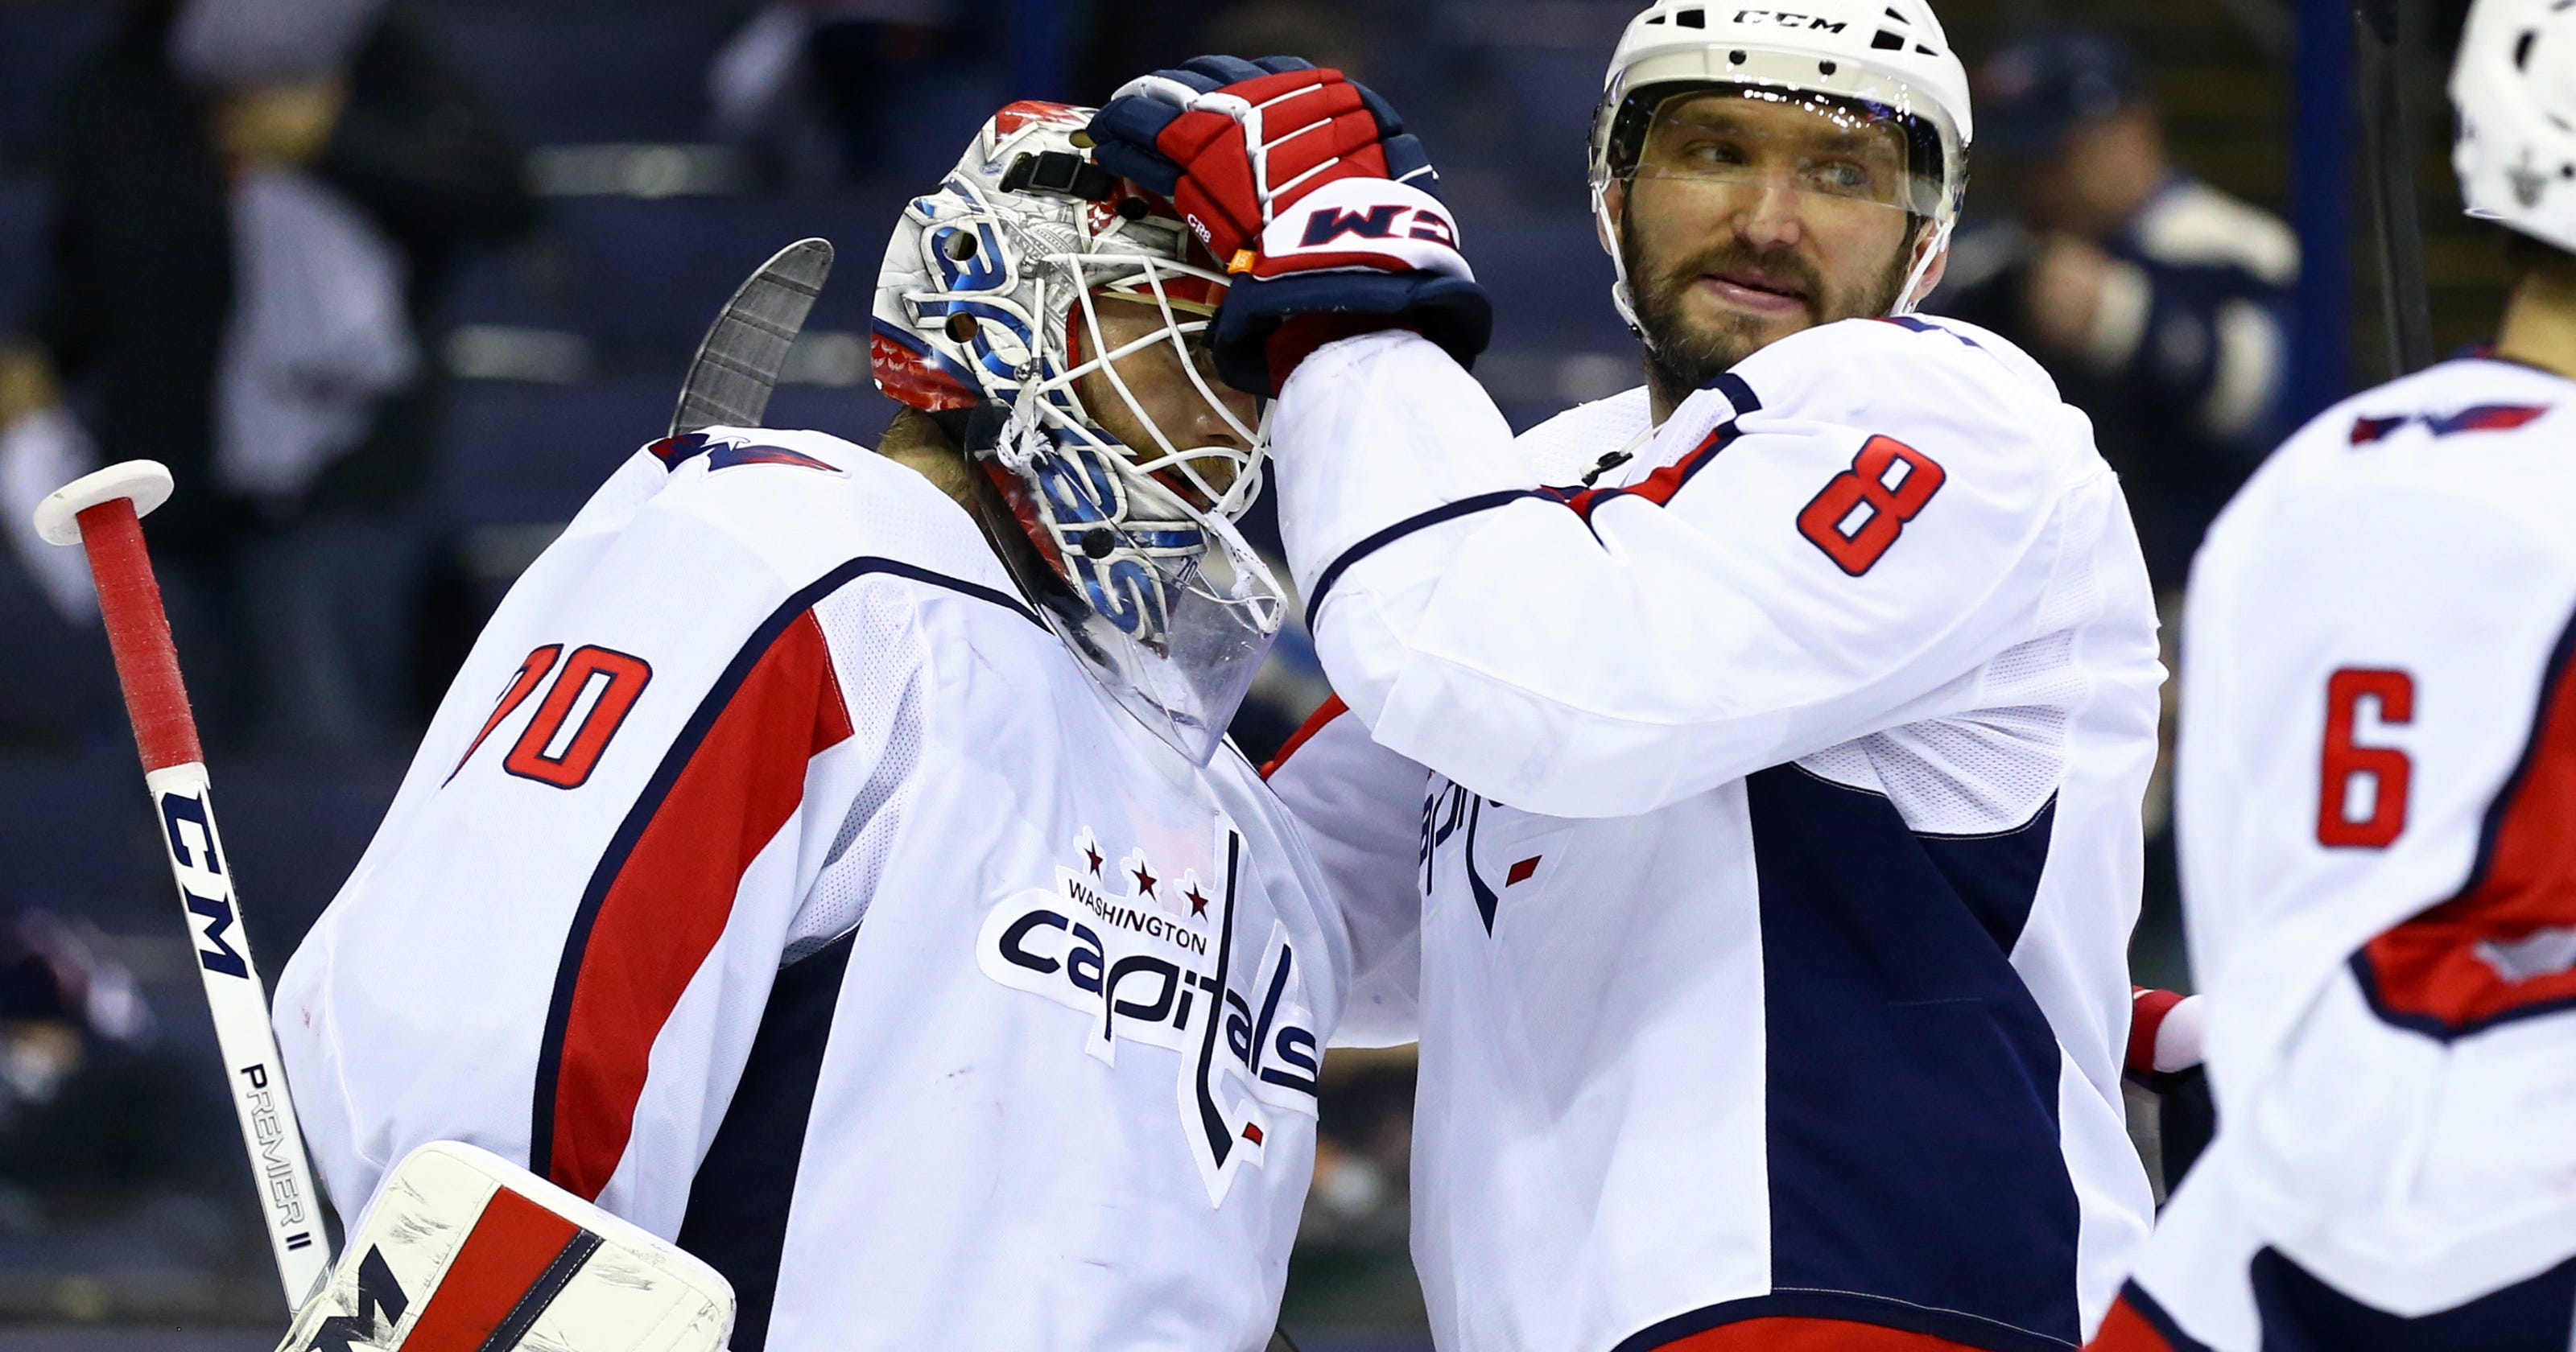 e83cd06ddff Holtby to Ovechkin   You re doing great